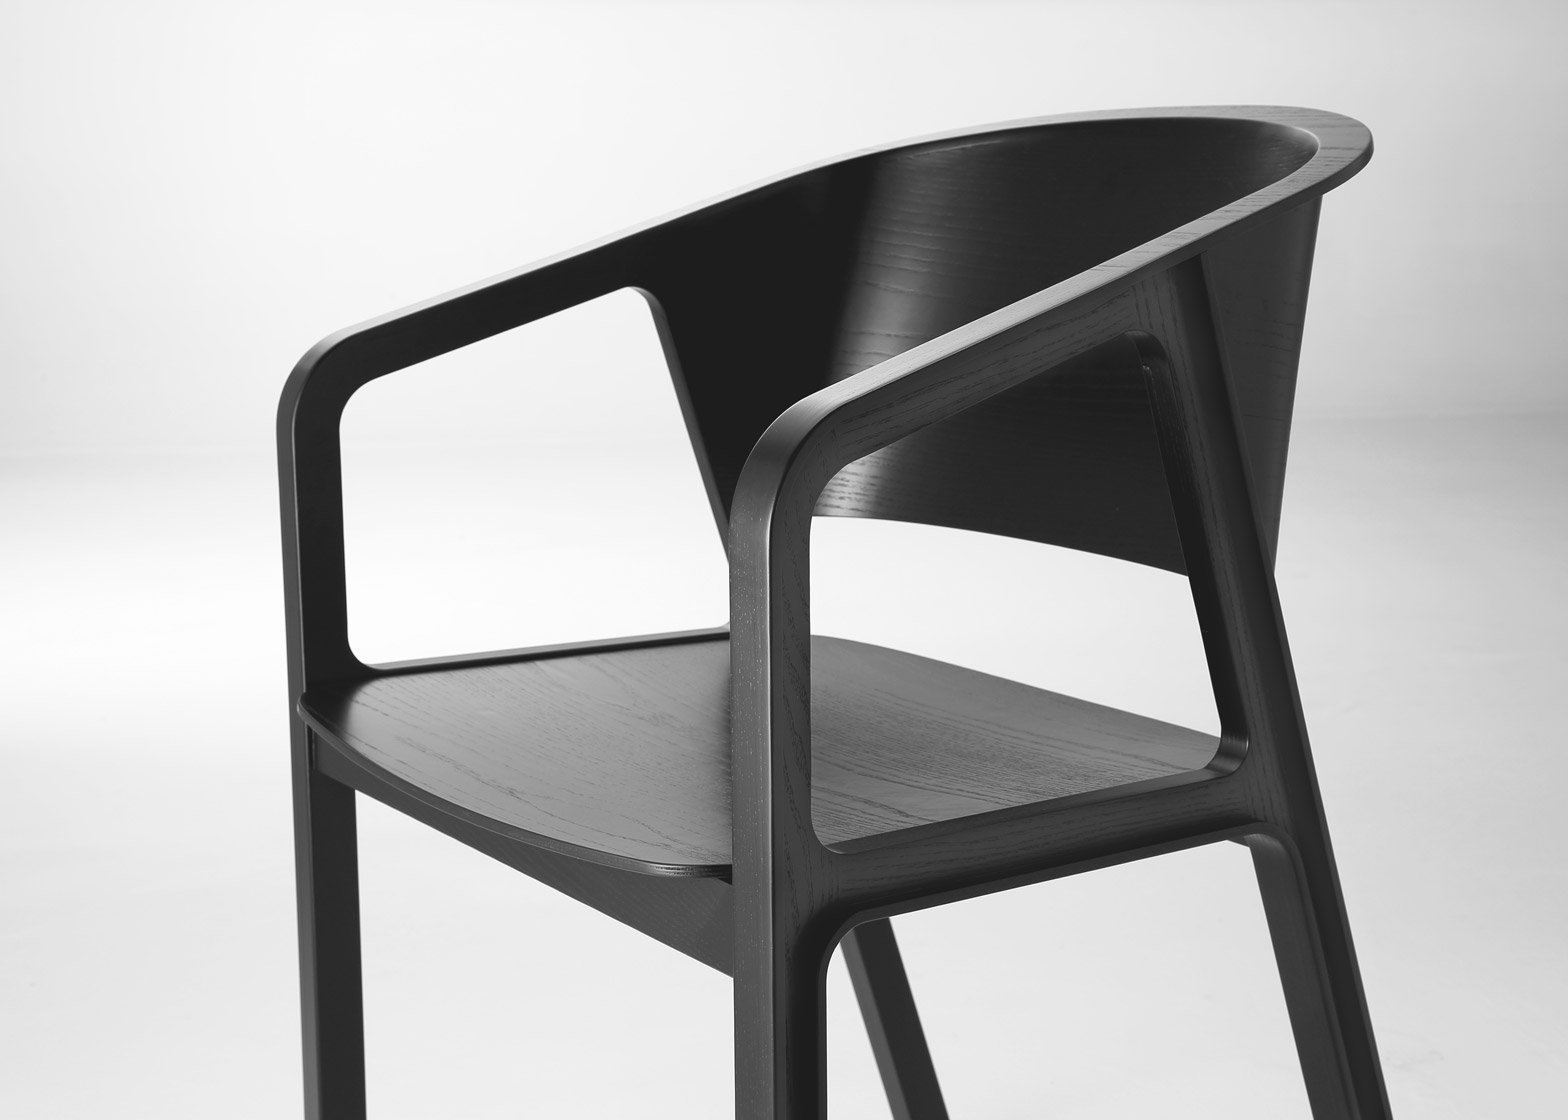 Beams Chair by EAJY